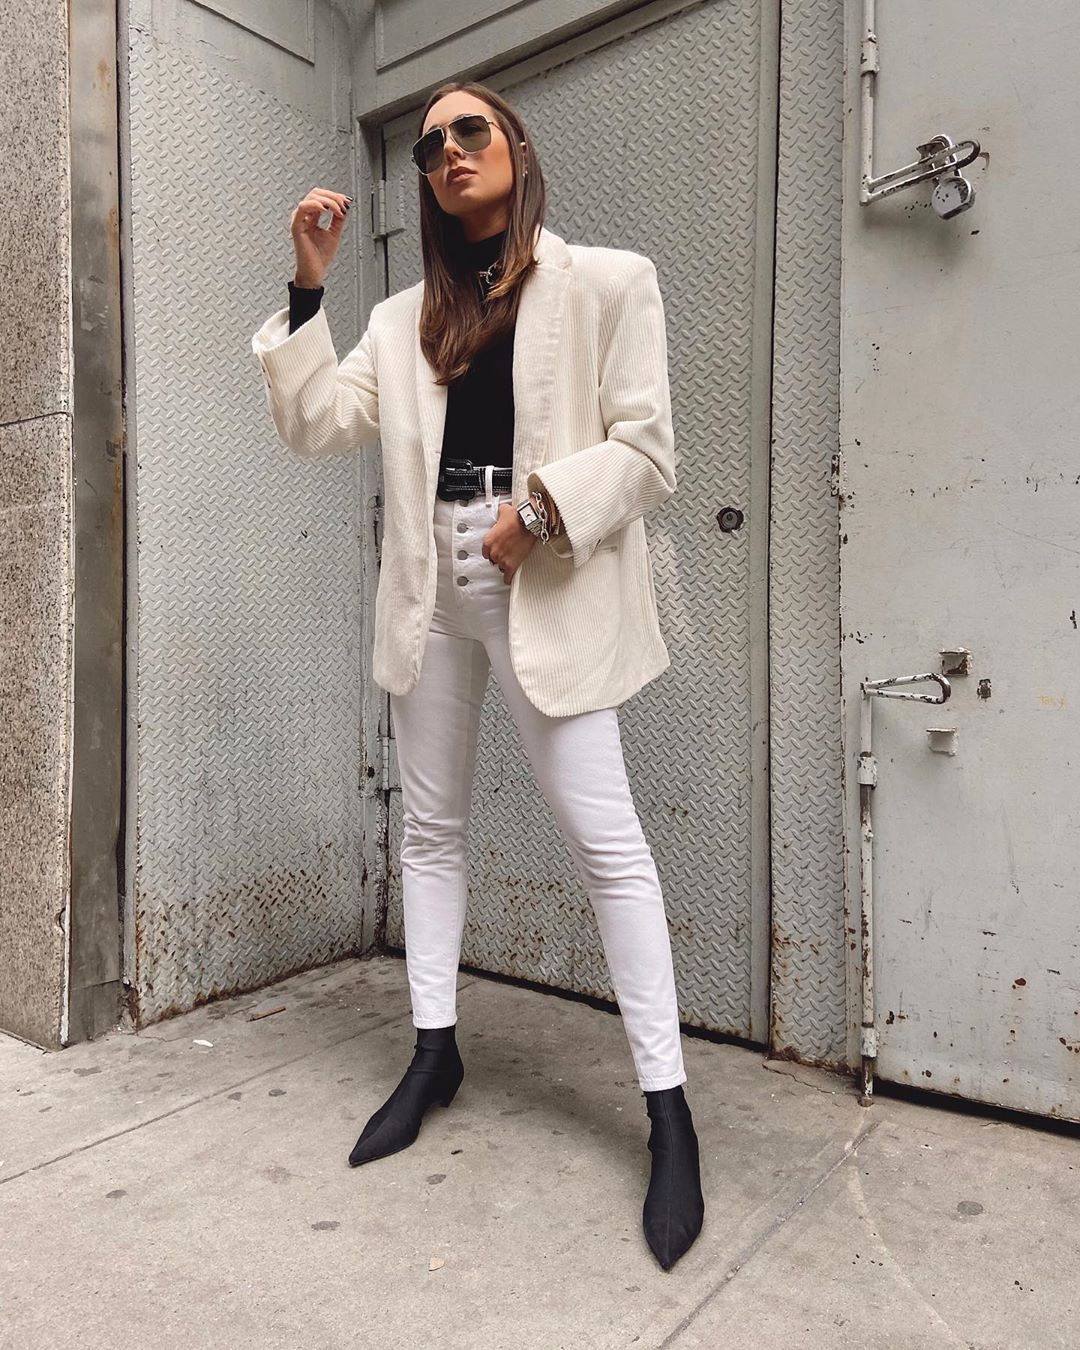 danielle-bernstein-winter-white-look-instagram